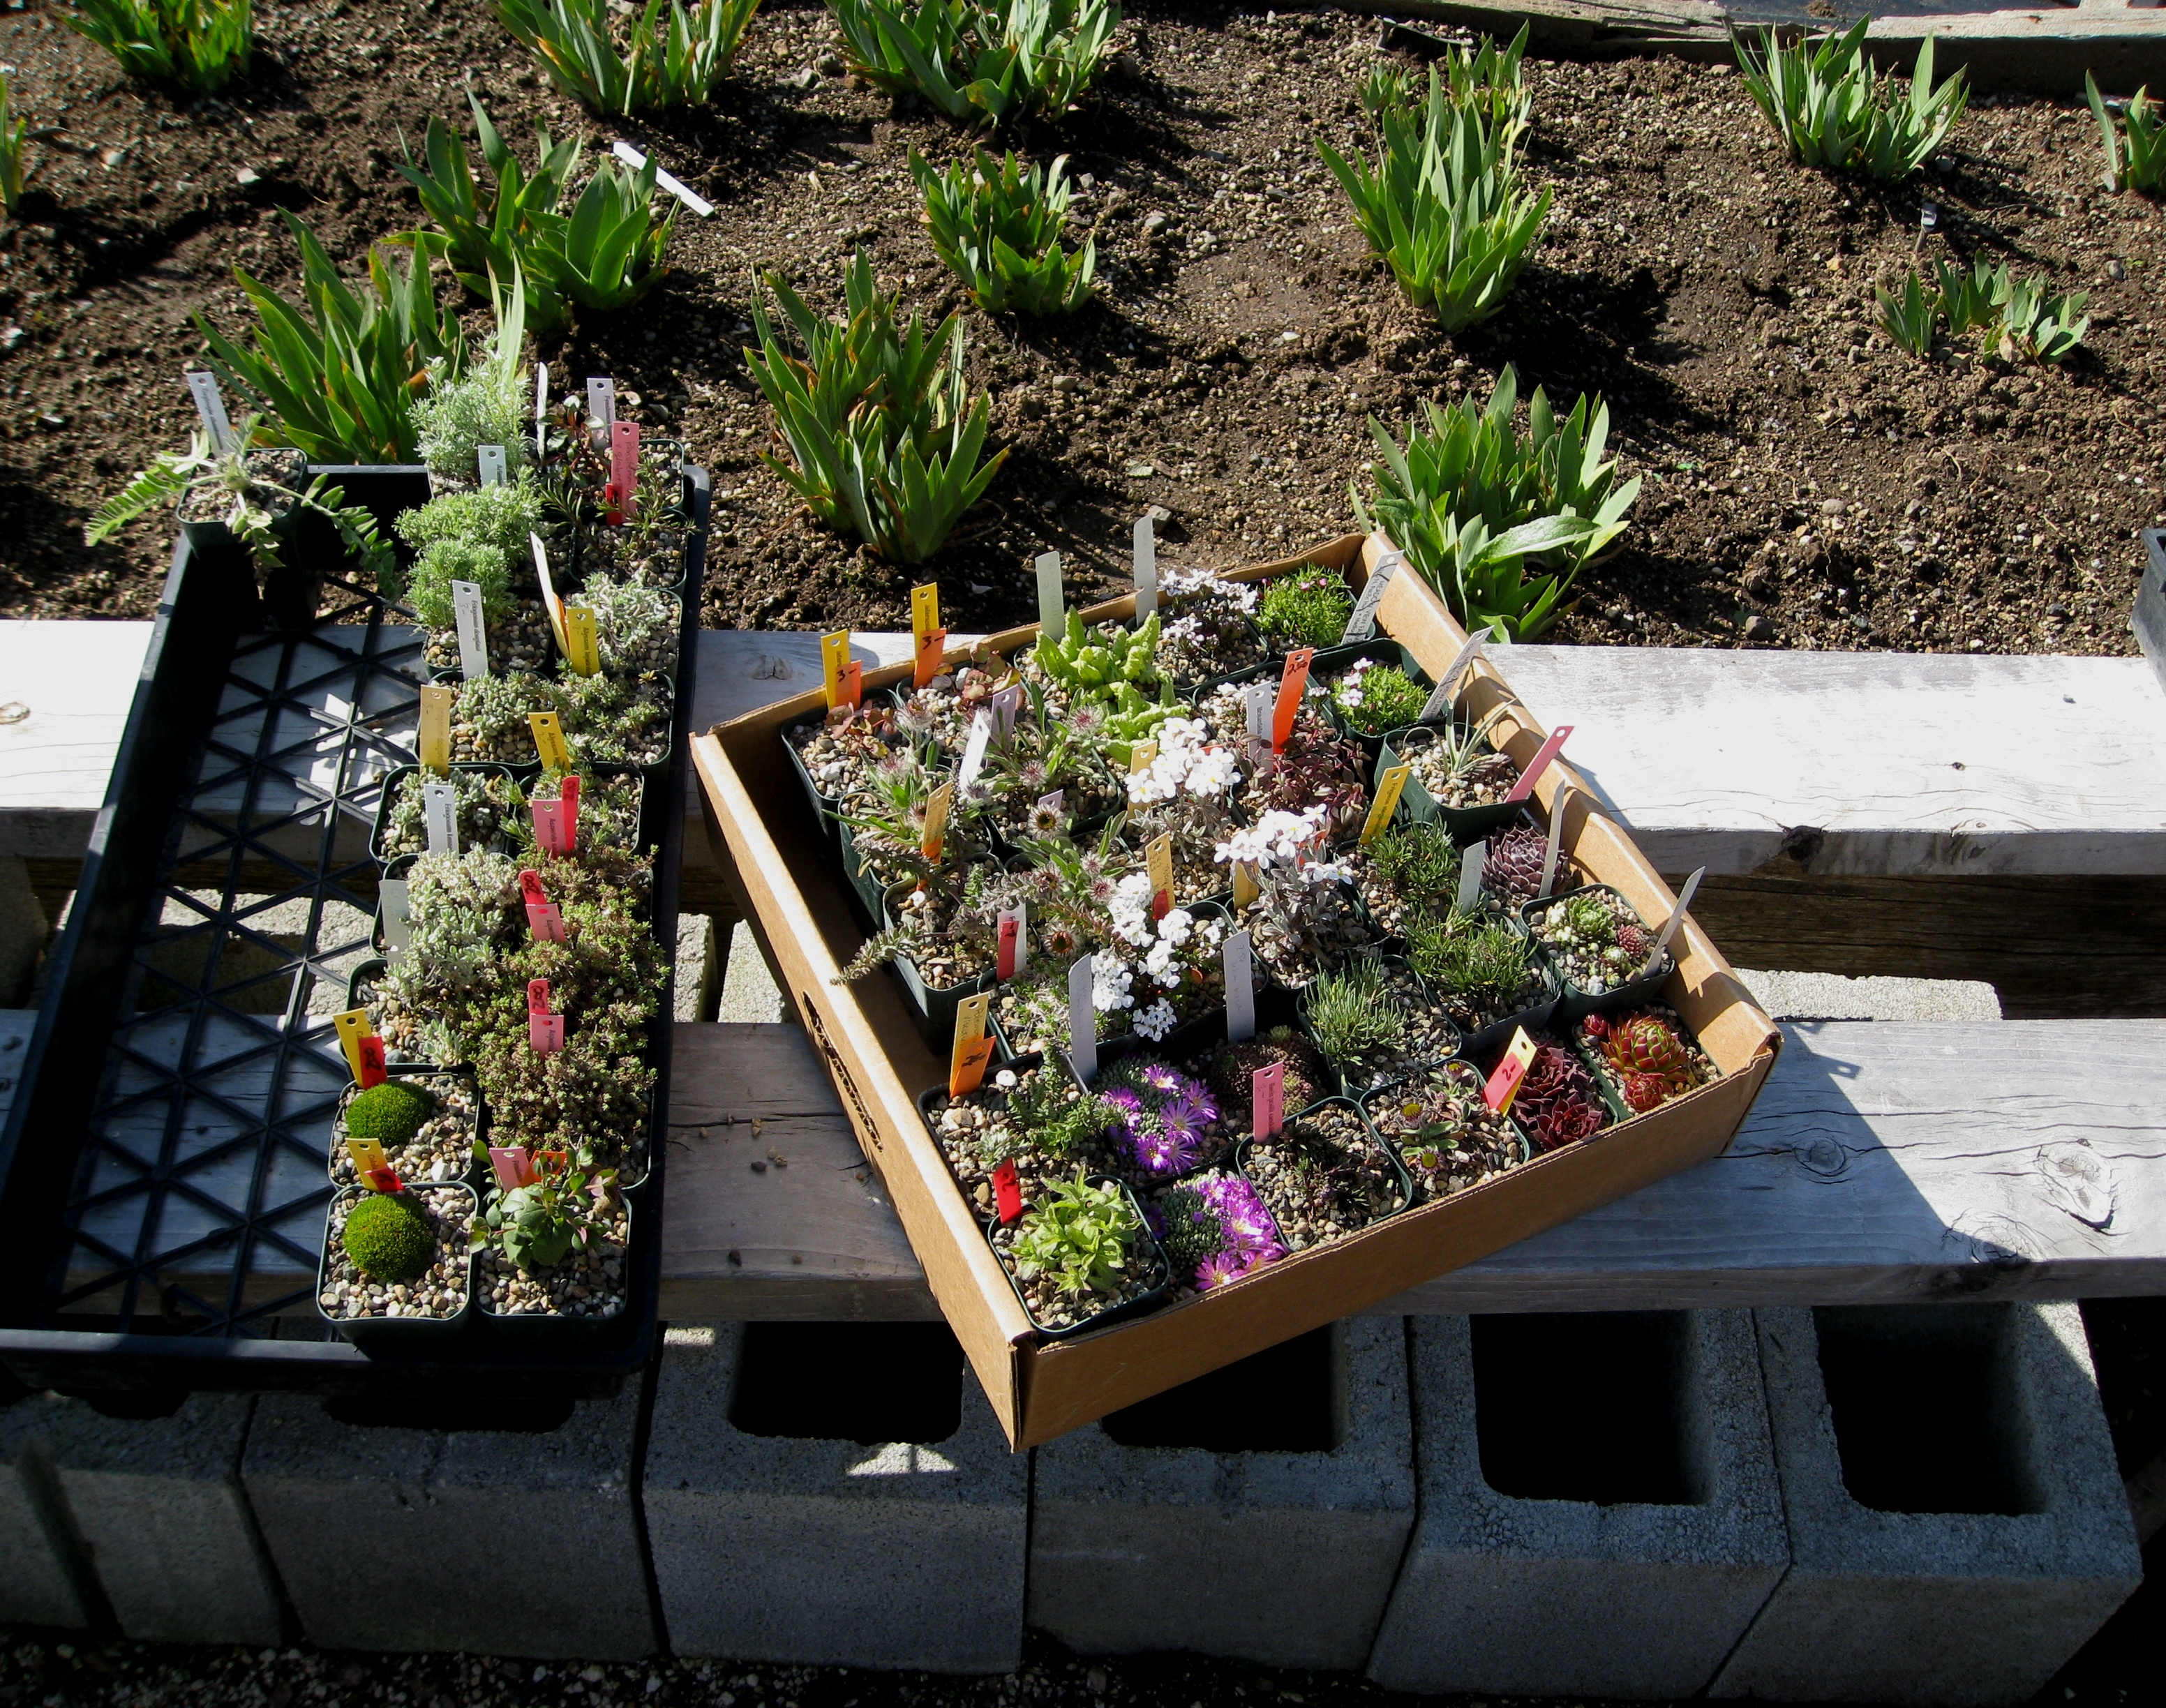 Quality inn suites 1000 islands blog 2015 blog posts plant sale may 9 sciox Images